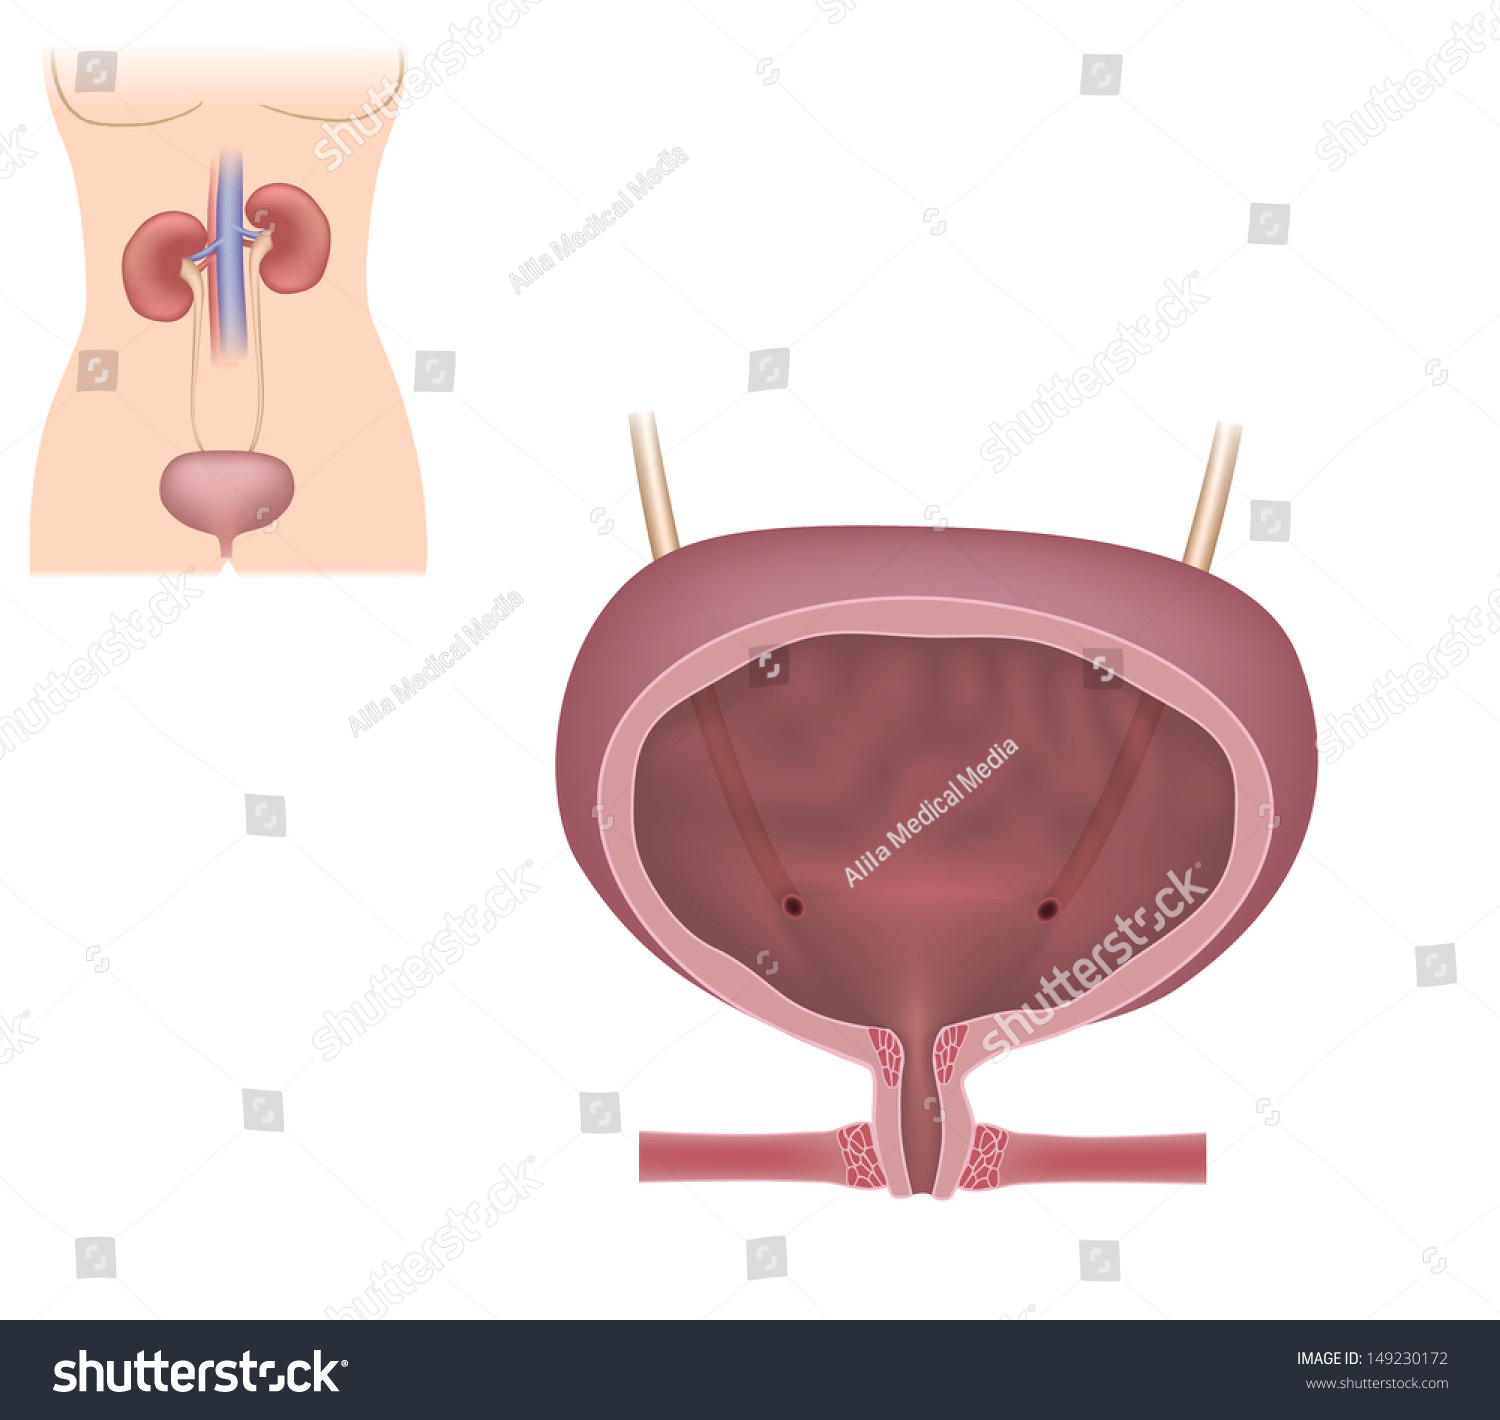 Female Urinary System Unlabeled Stock Illustration 149230172